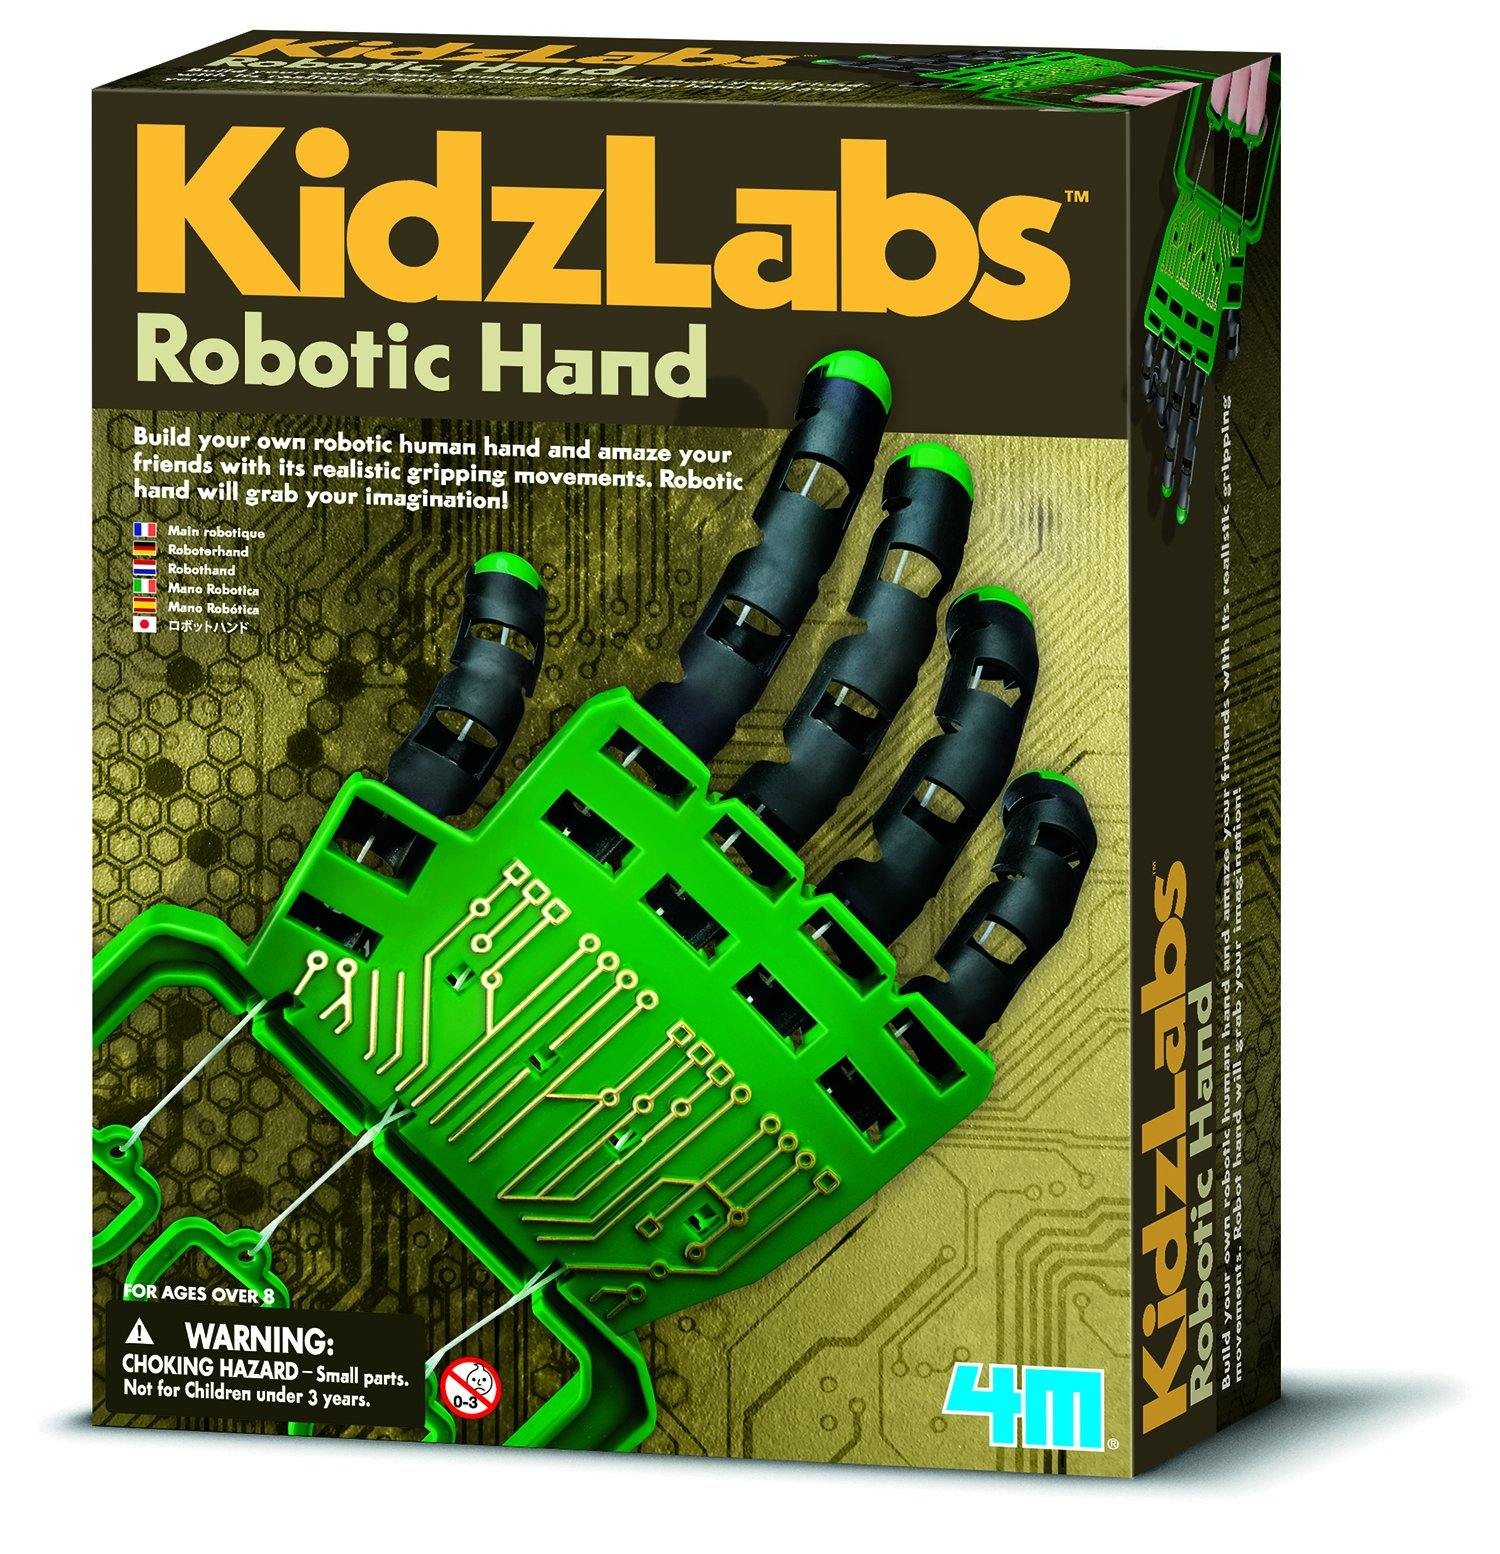 Robotic Hand Kit 2